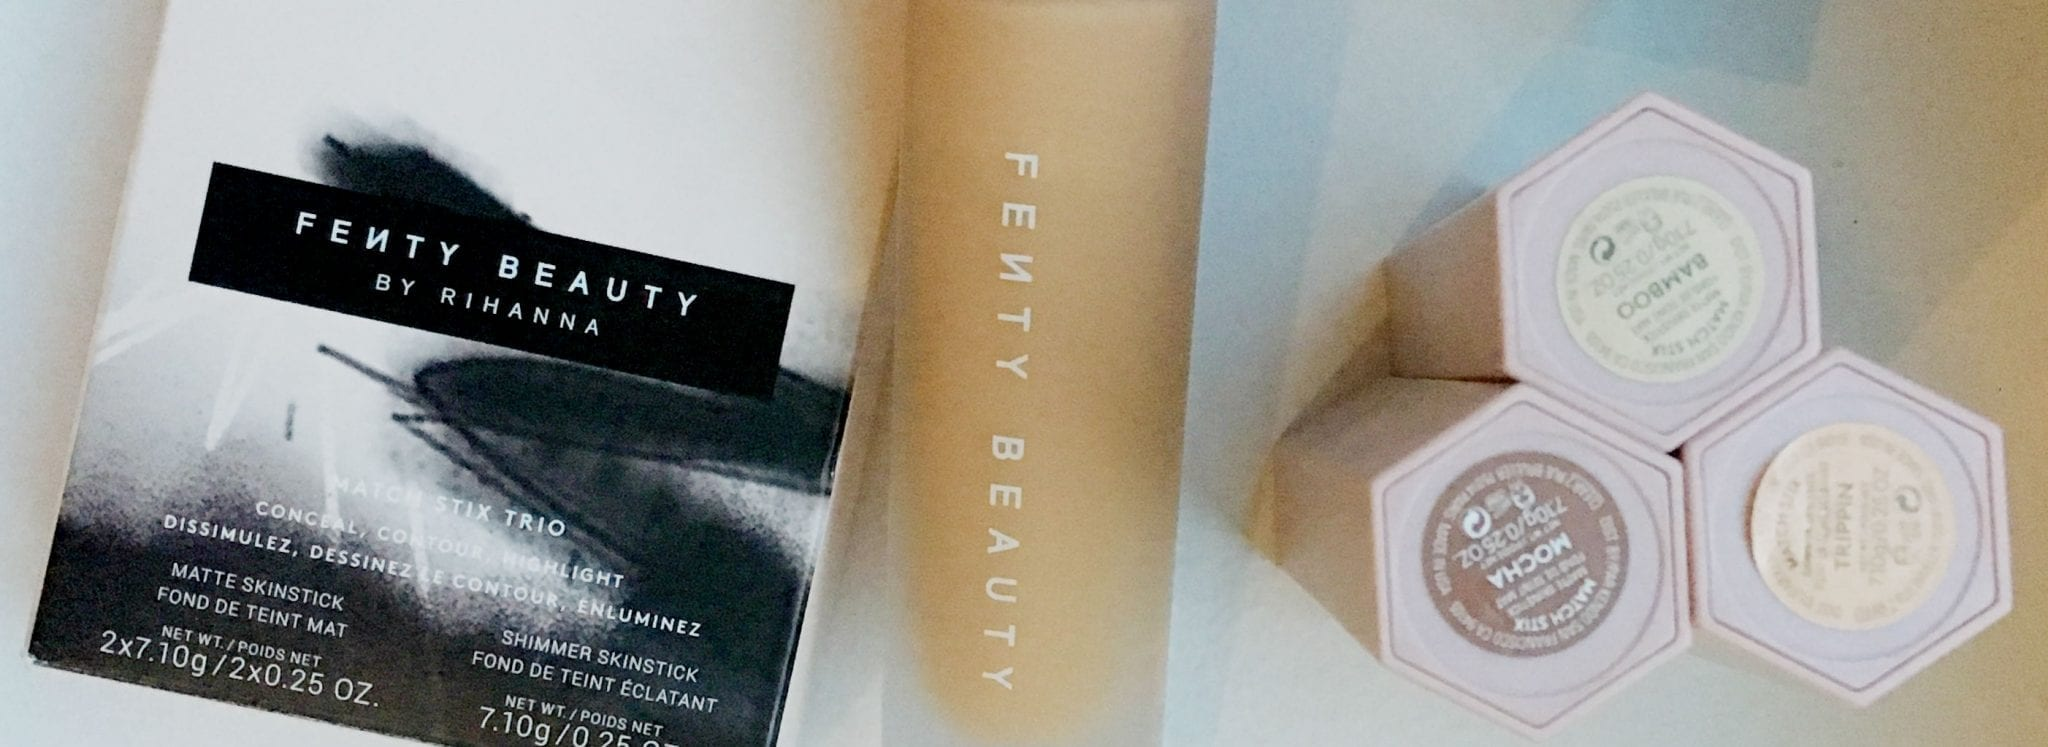 How to Wear Fenty Beauty Like a Grown Up!